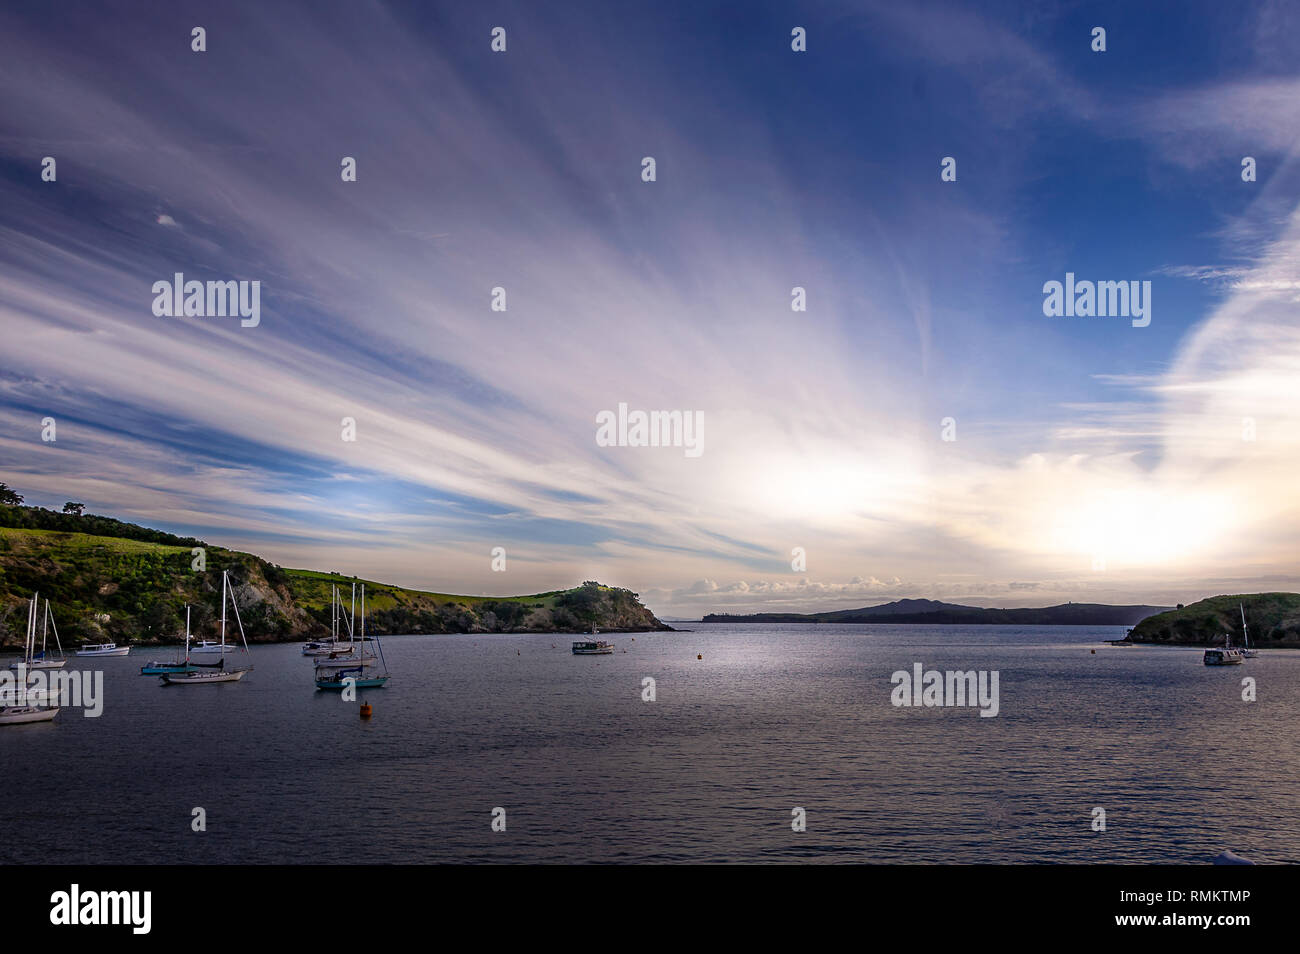 Dramatic sunset viewed from the Waiheke to Auckland inter-island ferry. Tranquil bay with sailing boats at anchor, against backlit clouds - Stock Image